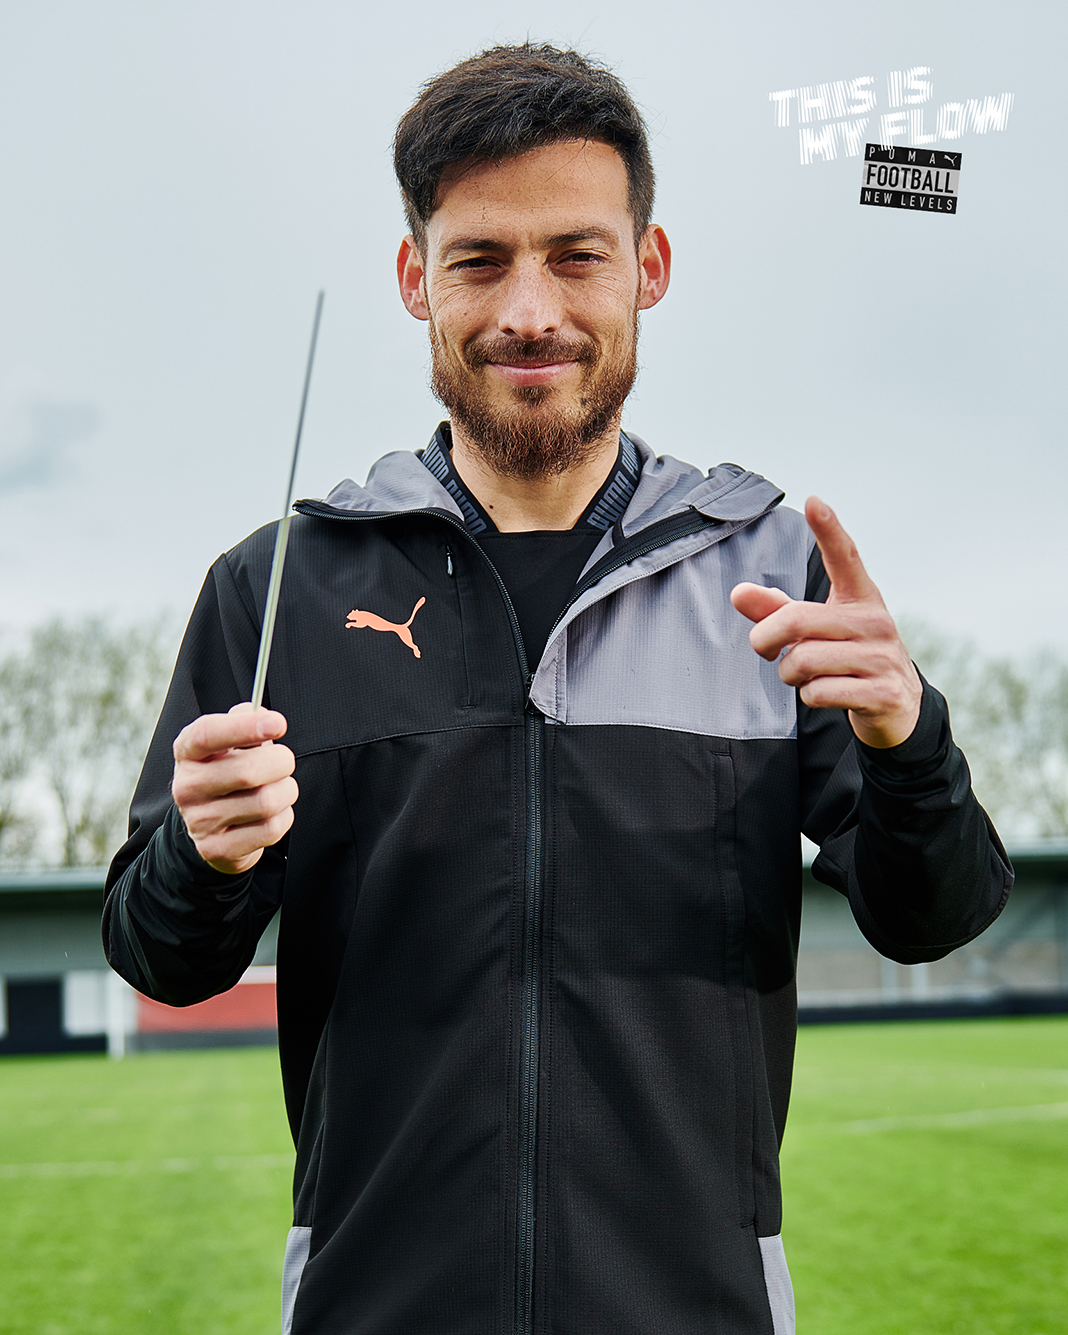 cover-puma-football-ambassadeur-pack-anthem-david-silva